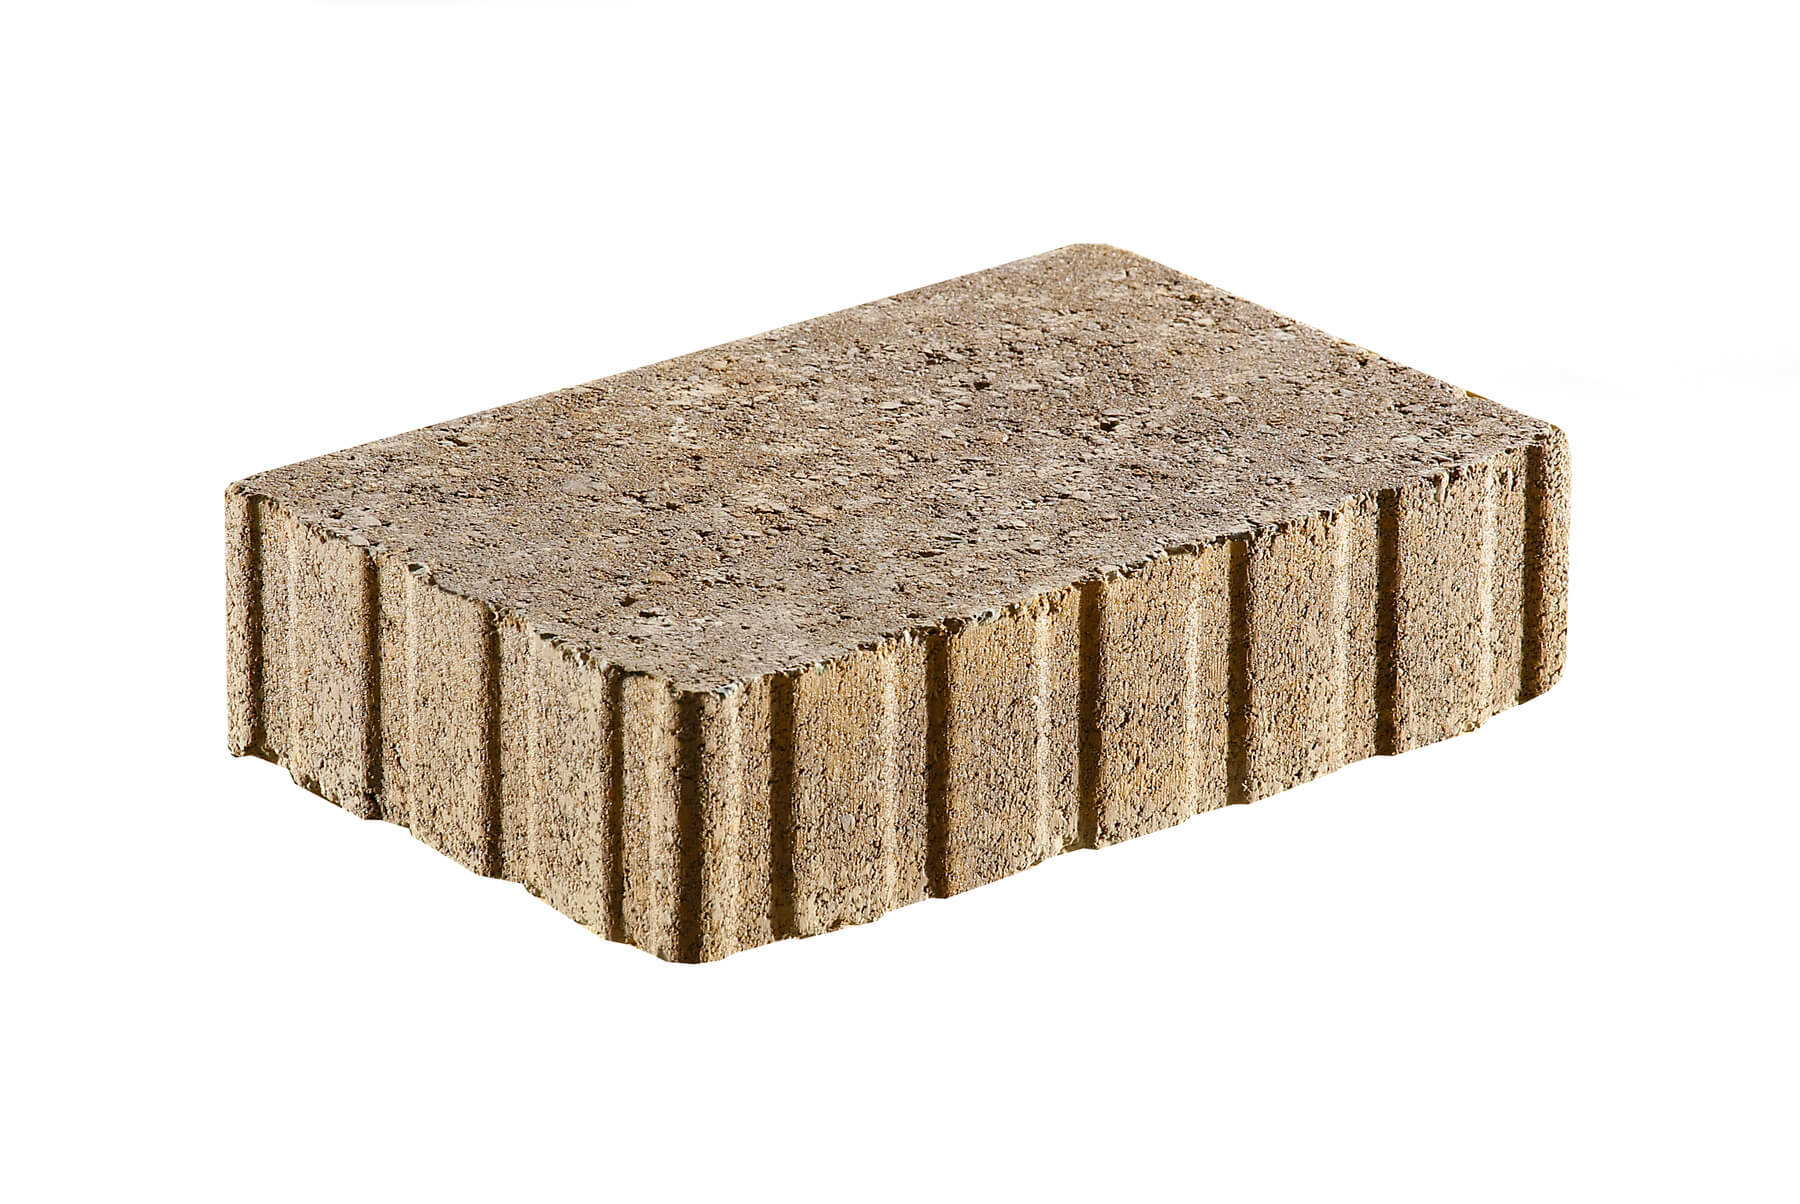 LISMORE Permeable Paving Product Image swatch